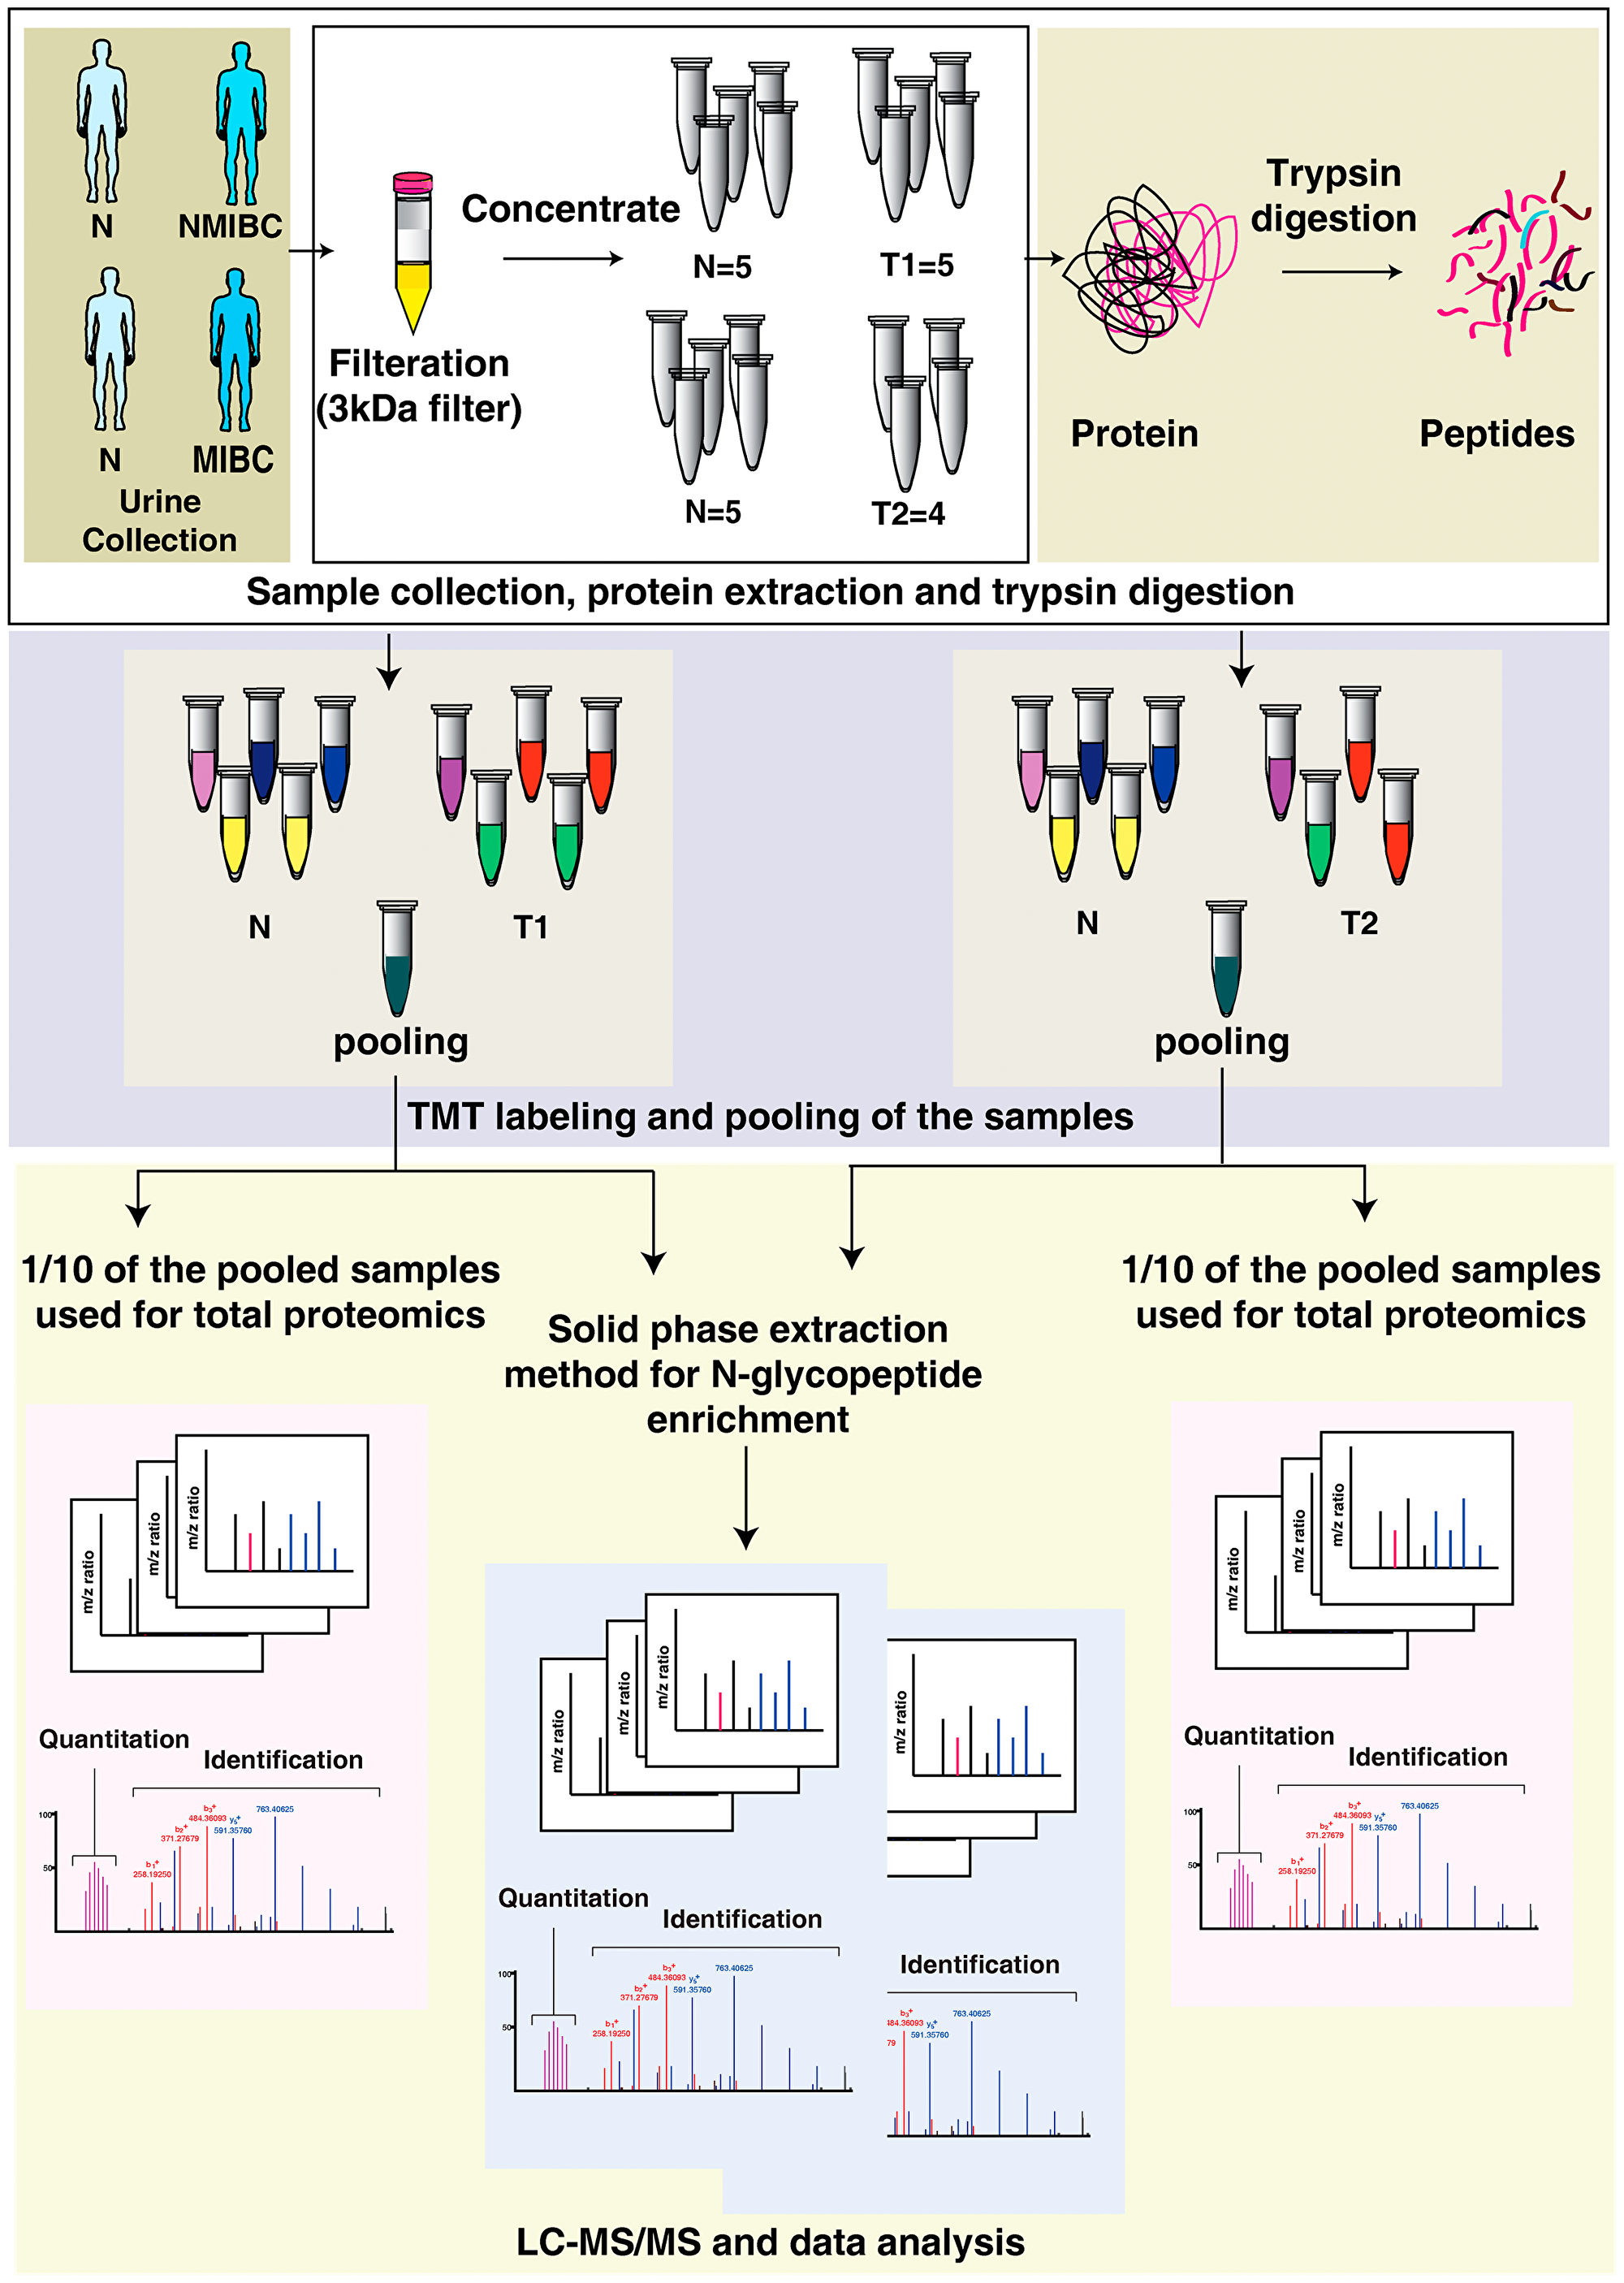 Integrated proteomics and N-glycoproteome analysis workflow applied to urine samples from bladder cancer patients and healthy subjects.